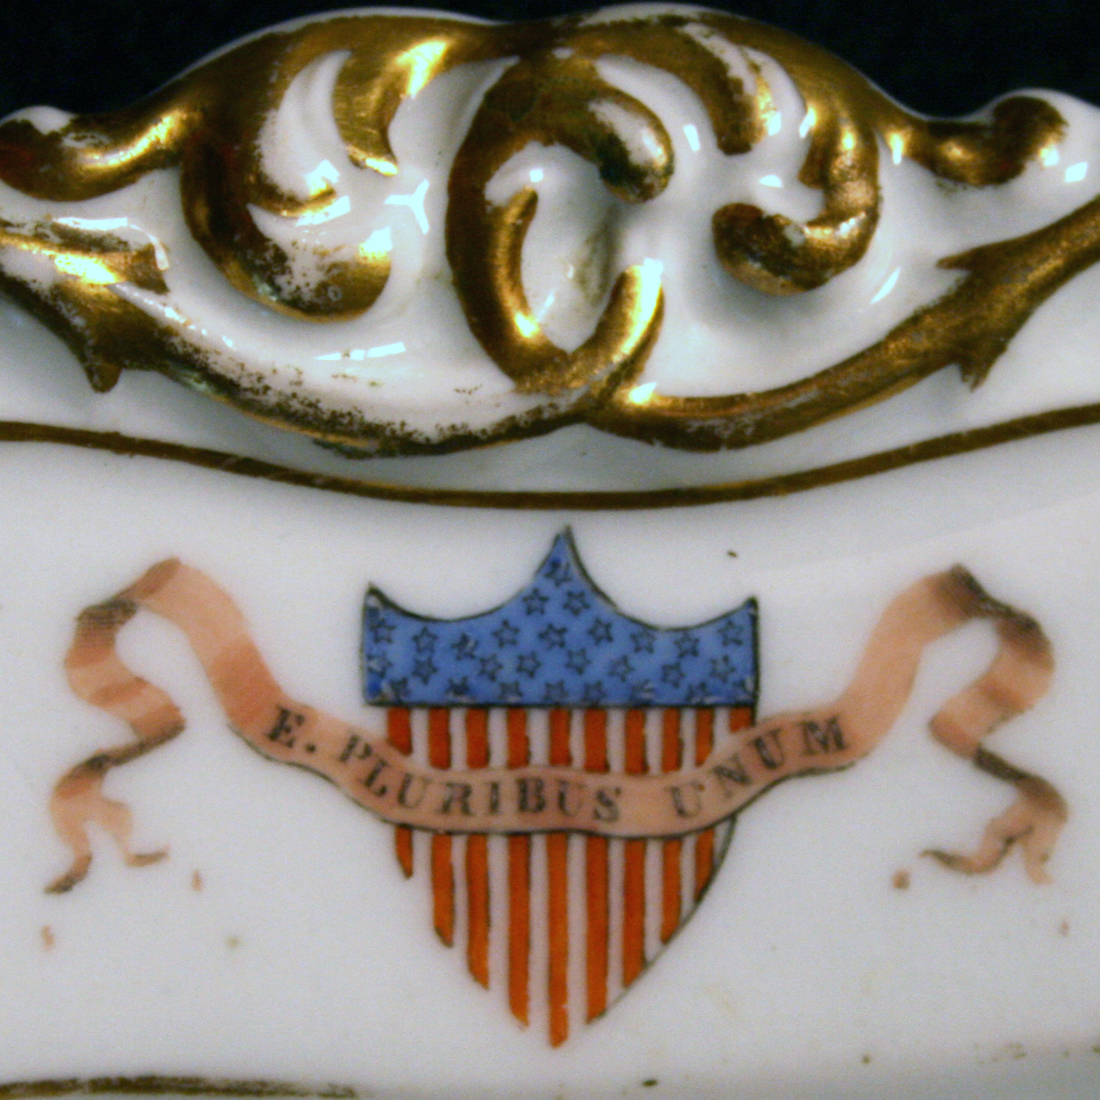 james k. polk white house china|raleigh degeer amyx|offcial white house china|the raleigh degeer amyx collection|presidential china|the american heritage collection|